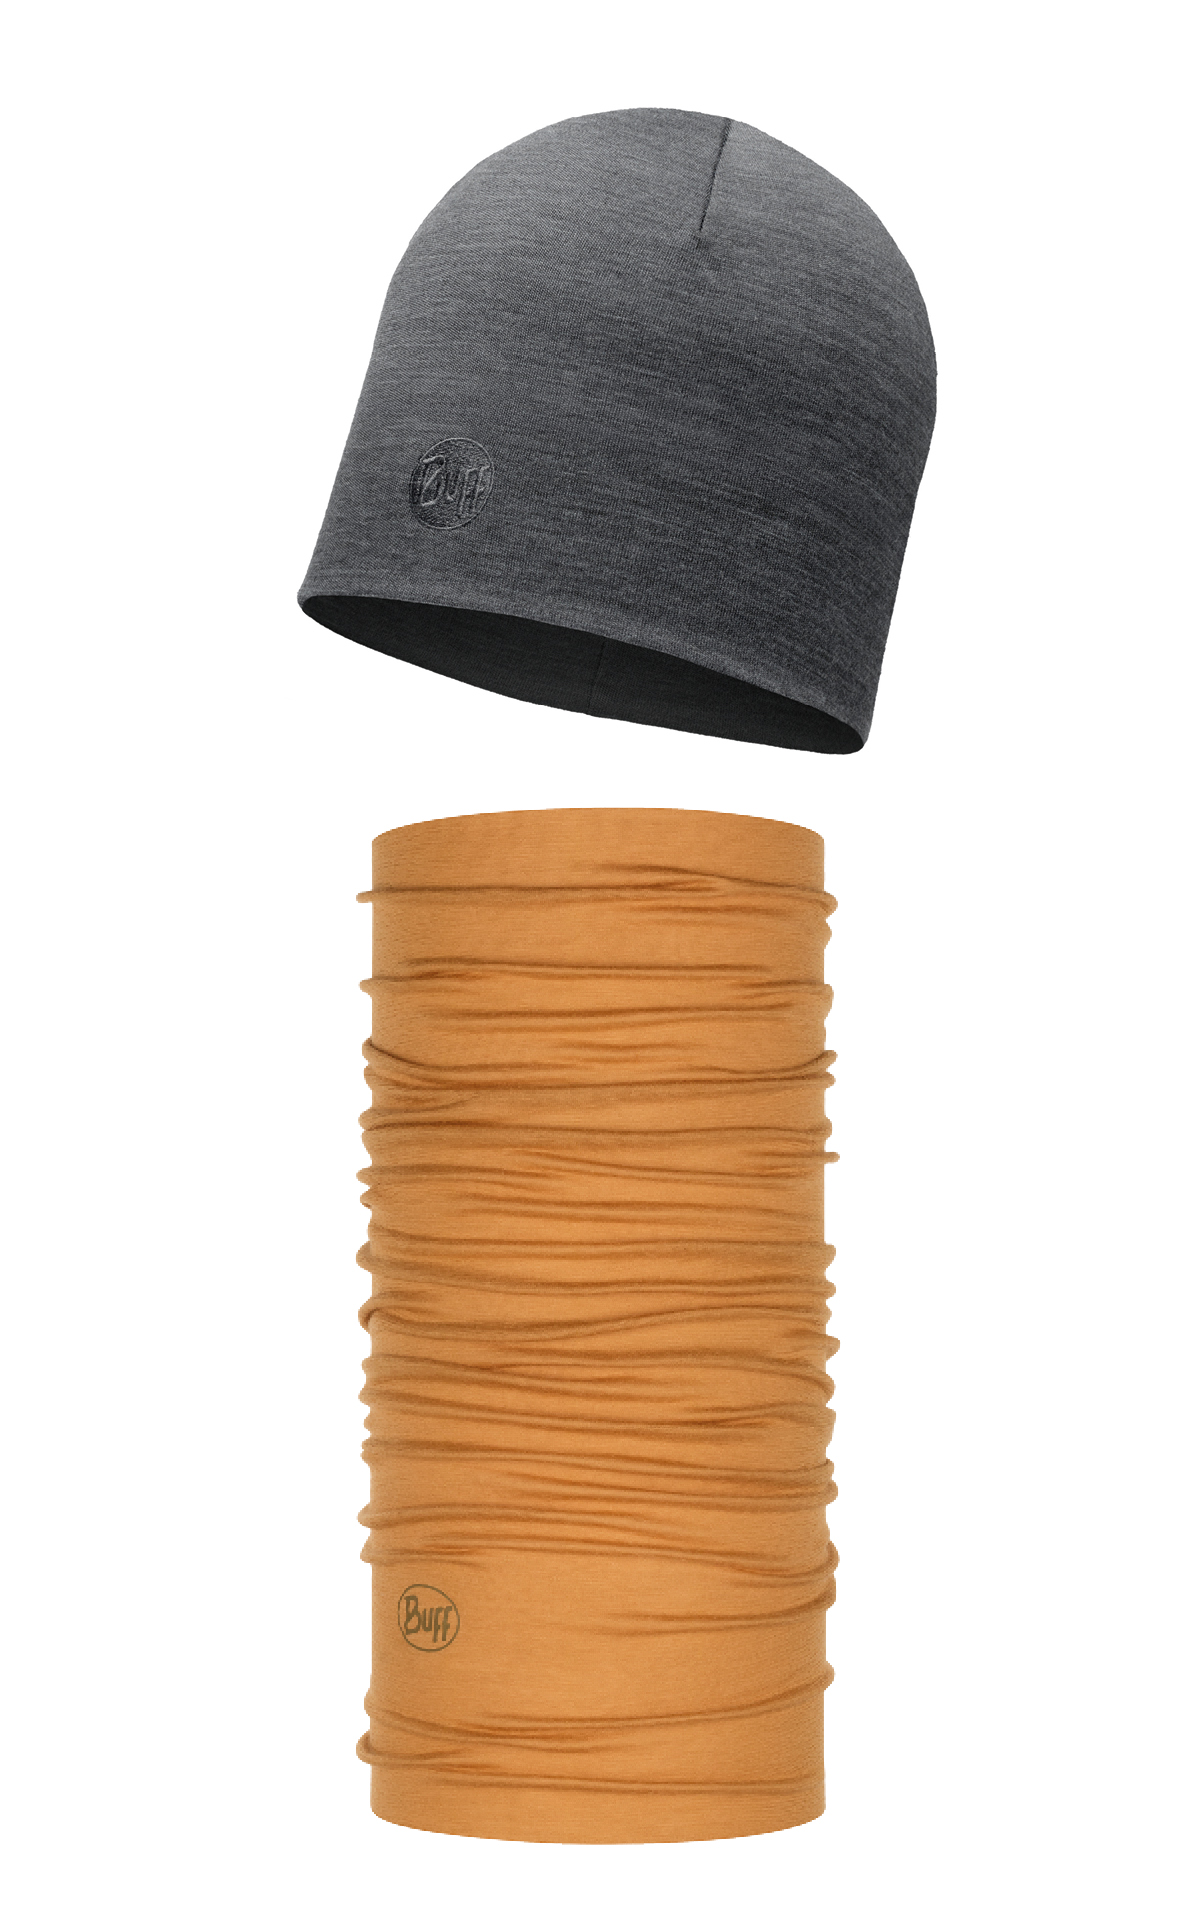 Merino hat and buff Buff